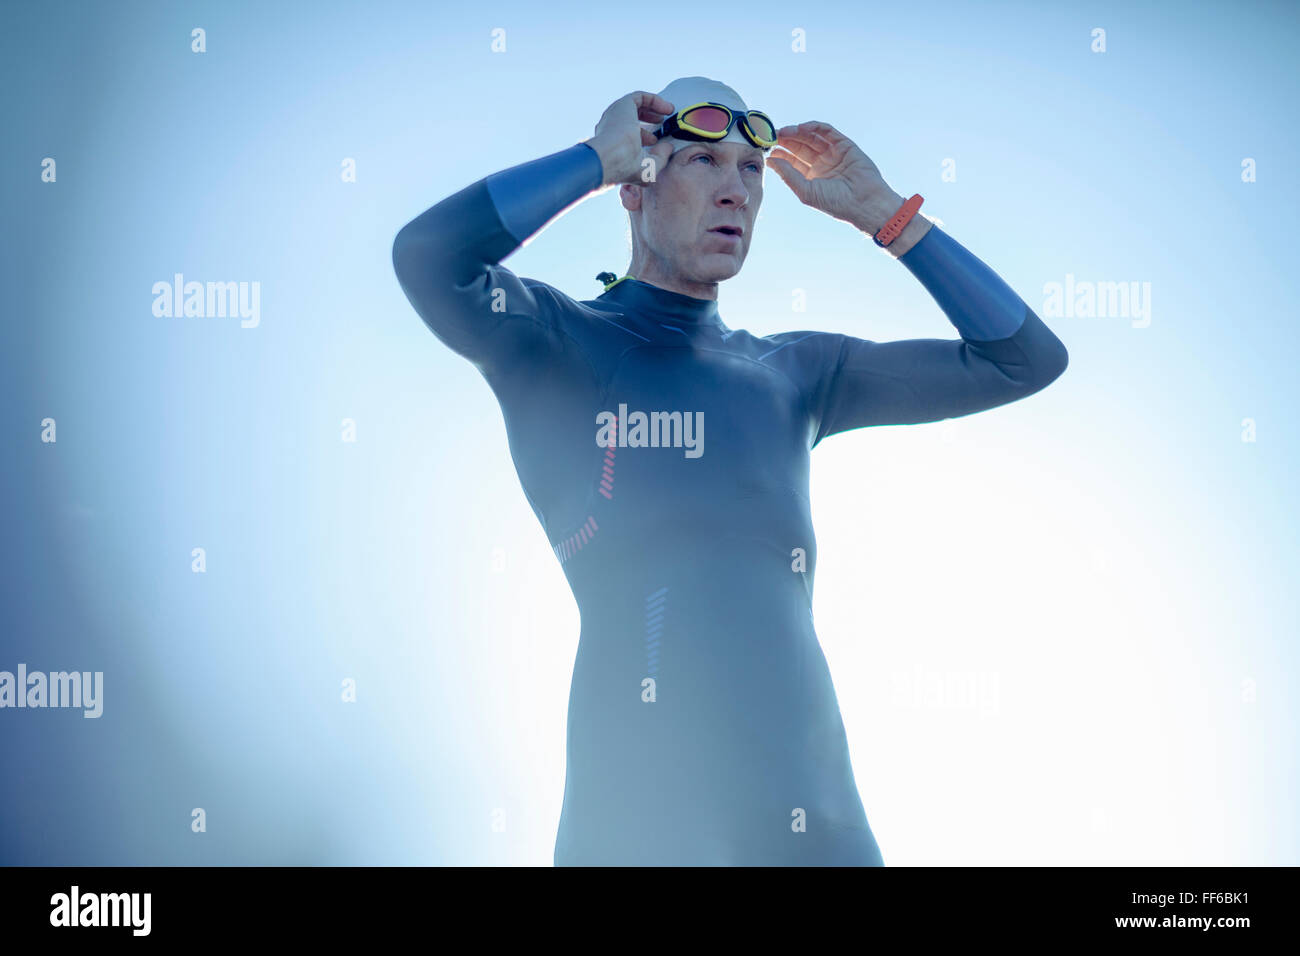 A swimmer in a wetsuit and swimming hat, adjusting his swimming goggles. - Stock Image